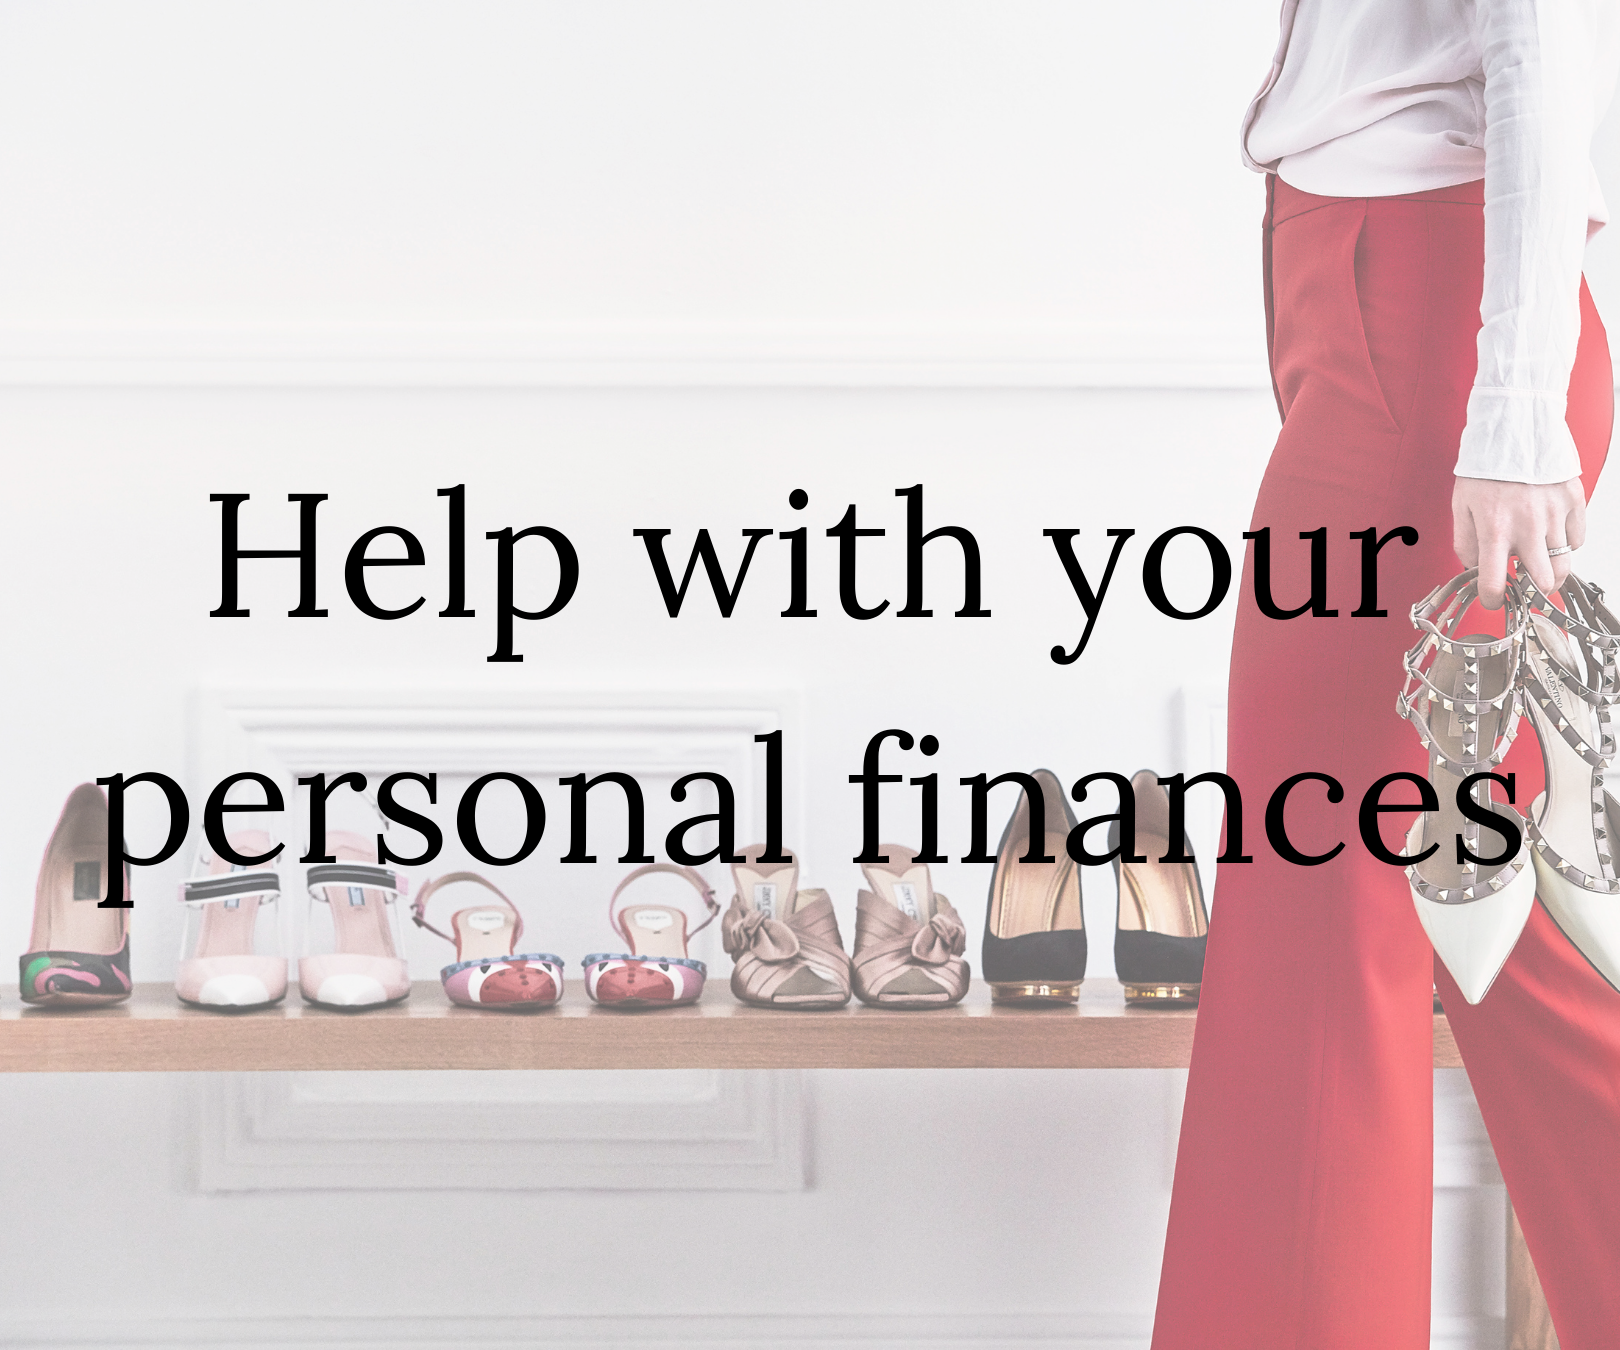 Help with your personal finances